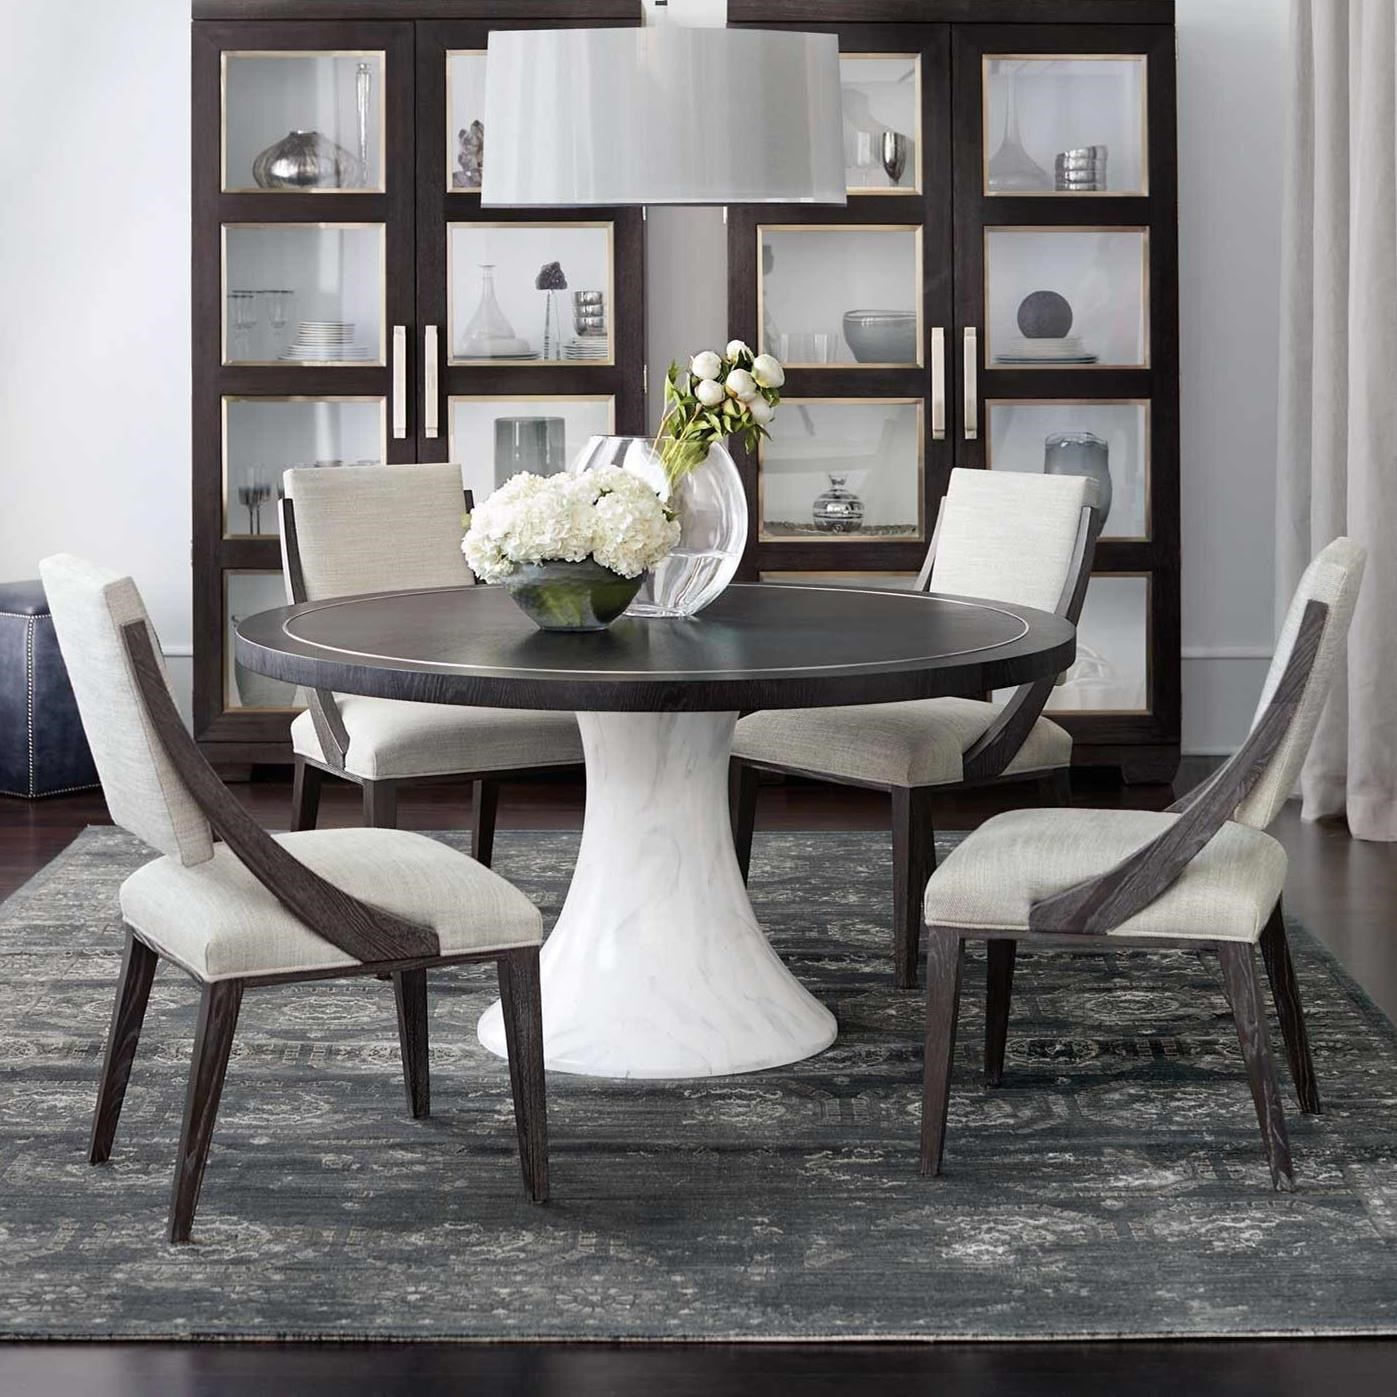 Decorage 5 Piece Table and Chair Set by Bernhardt at Baer's Furniture